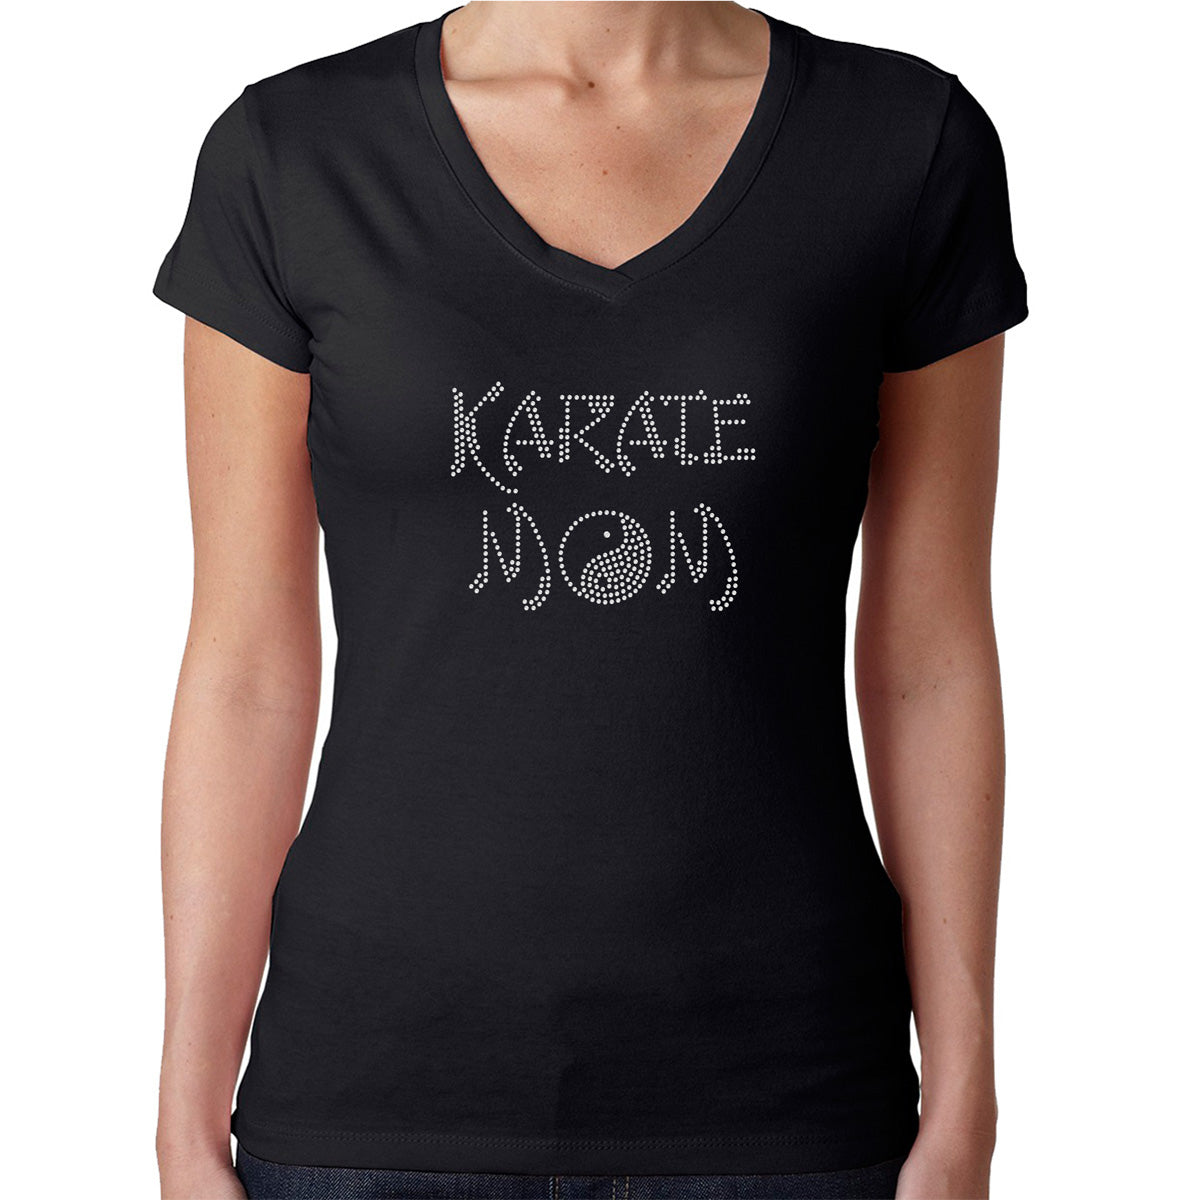 Womens T-Shirt Rhinestone Bling Black Fitted Tee Karate Mom Sports Sparkle